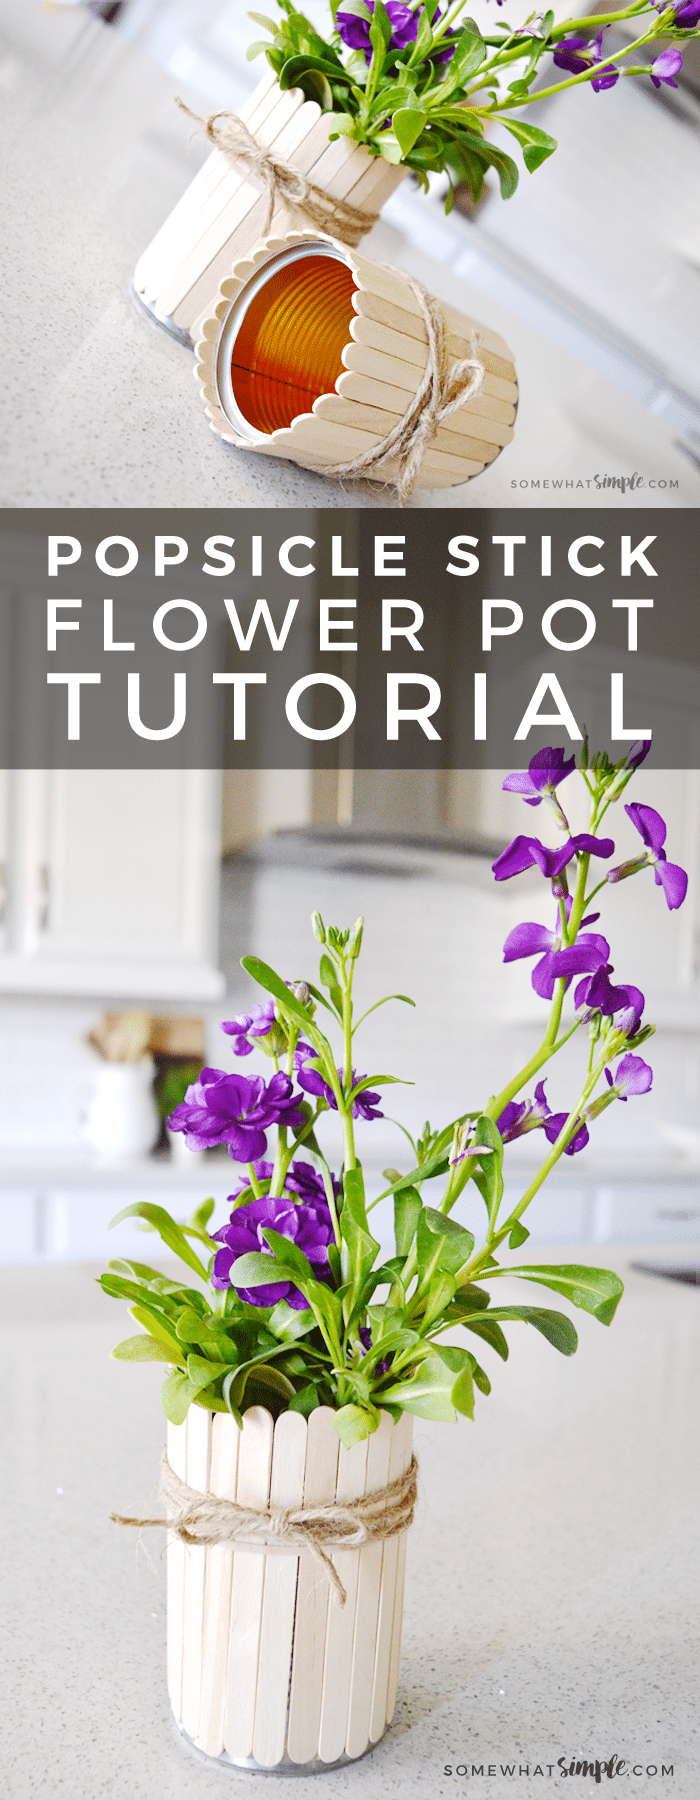 A no-mess, easy to make craft for the kids! With just a few basic supplies, make these simple + beautiful popsicle stick flower pots in minutes!